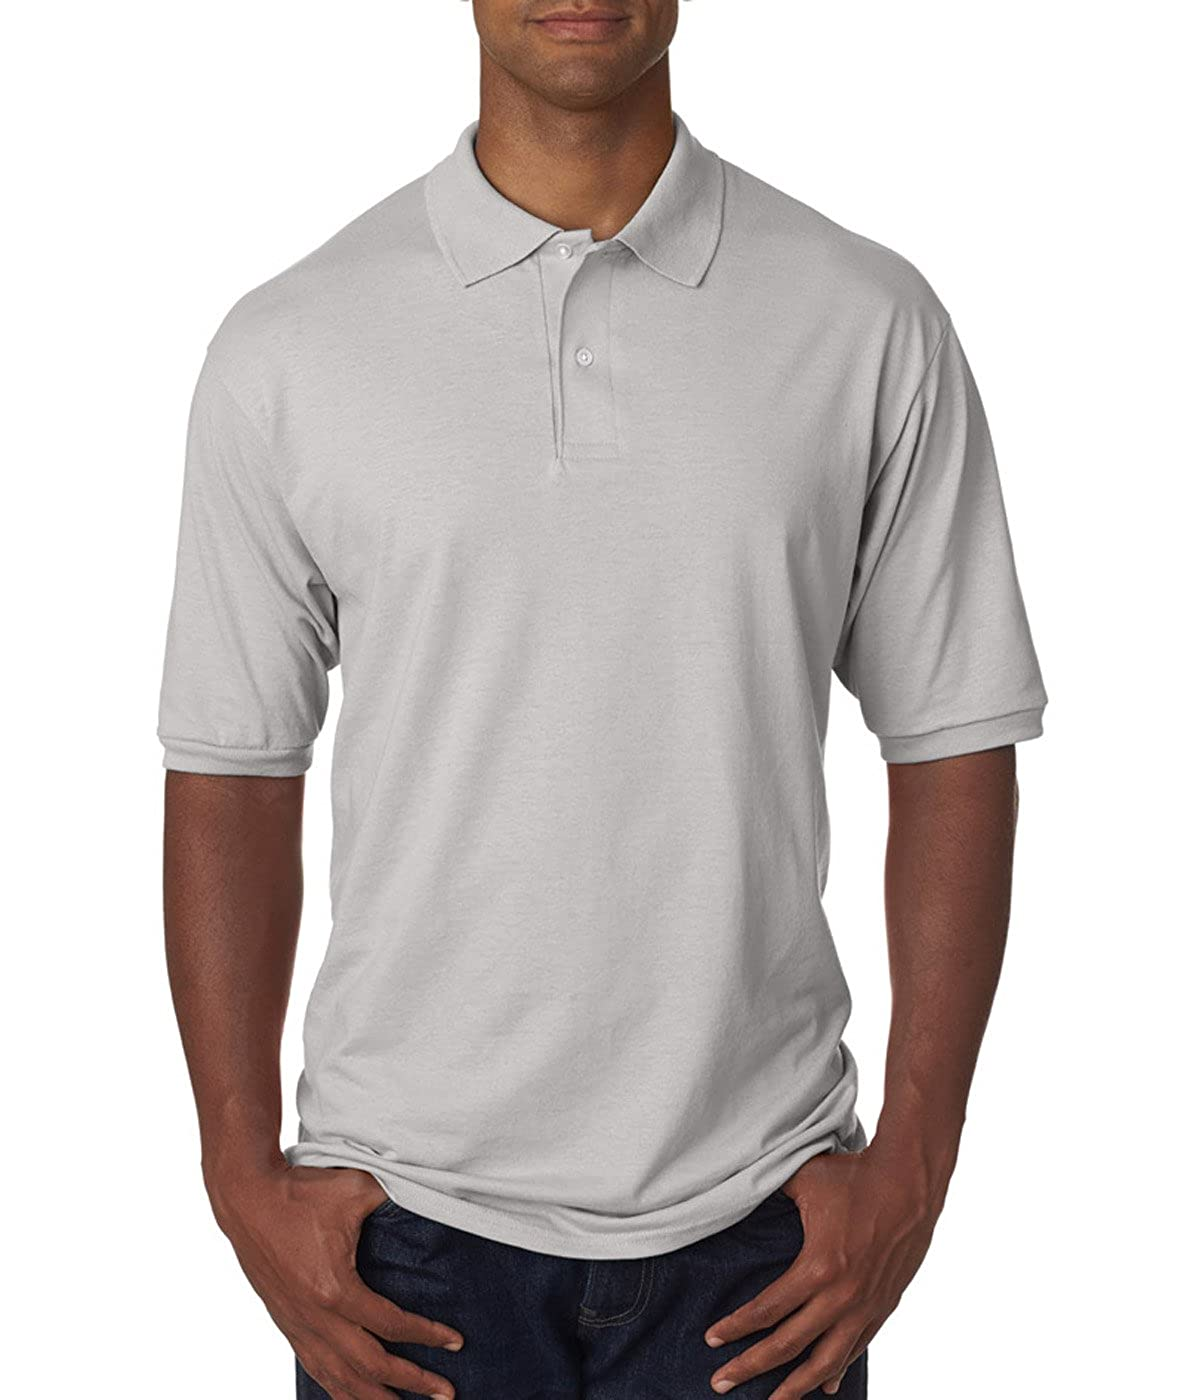 Jerzees Mens Stain Resistant 1X1 Ribbed Cuffs Polo Shirt